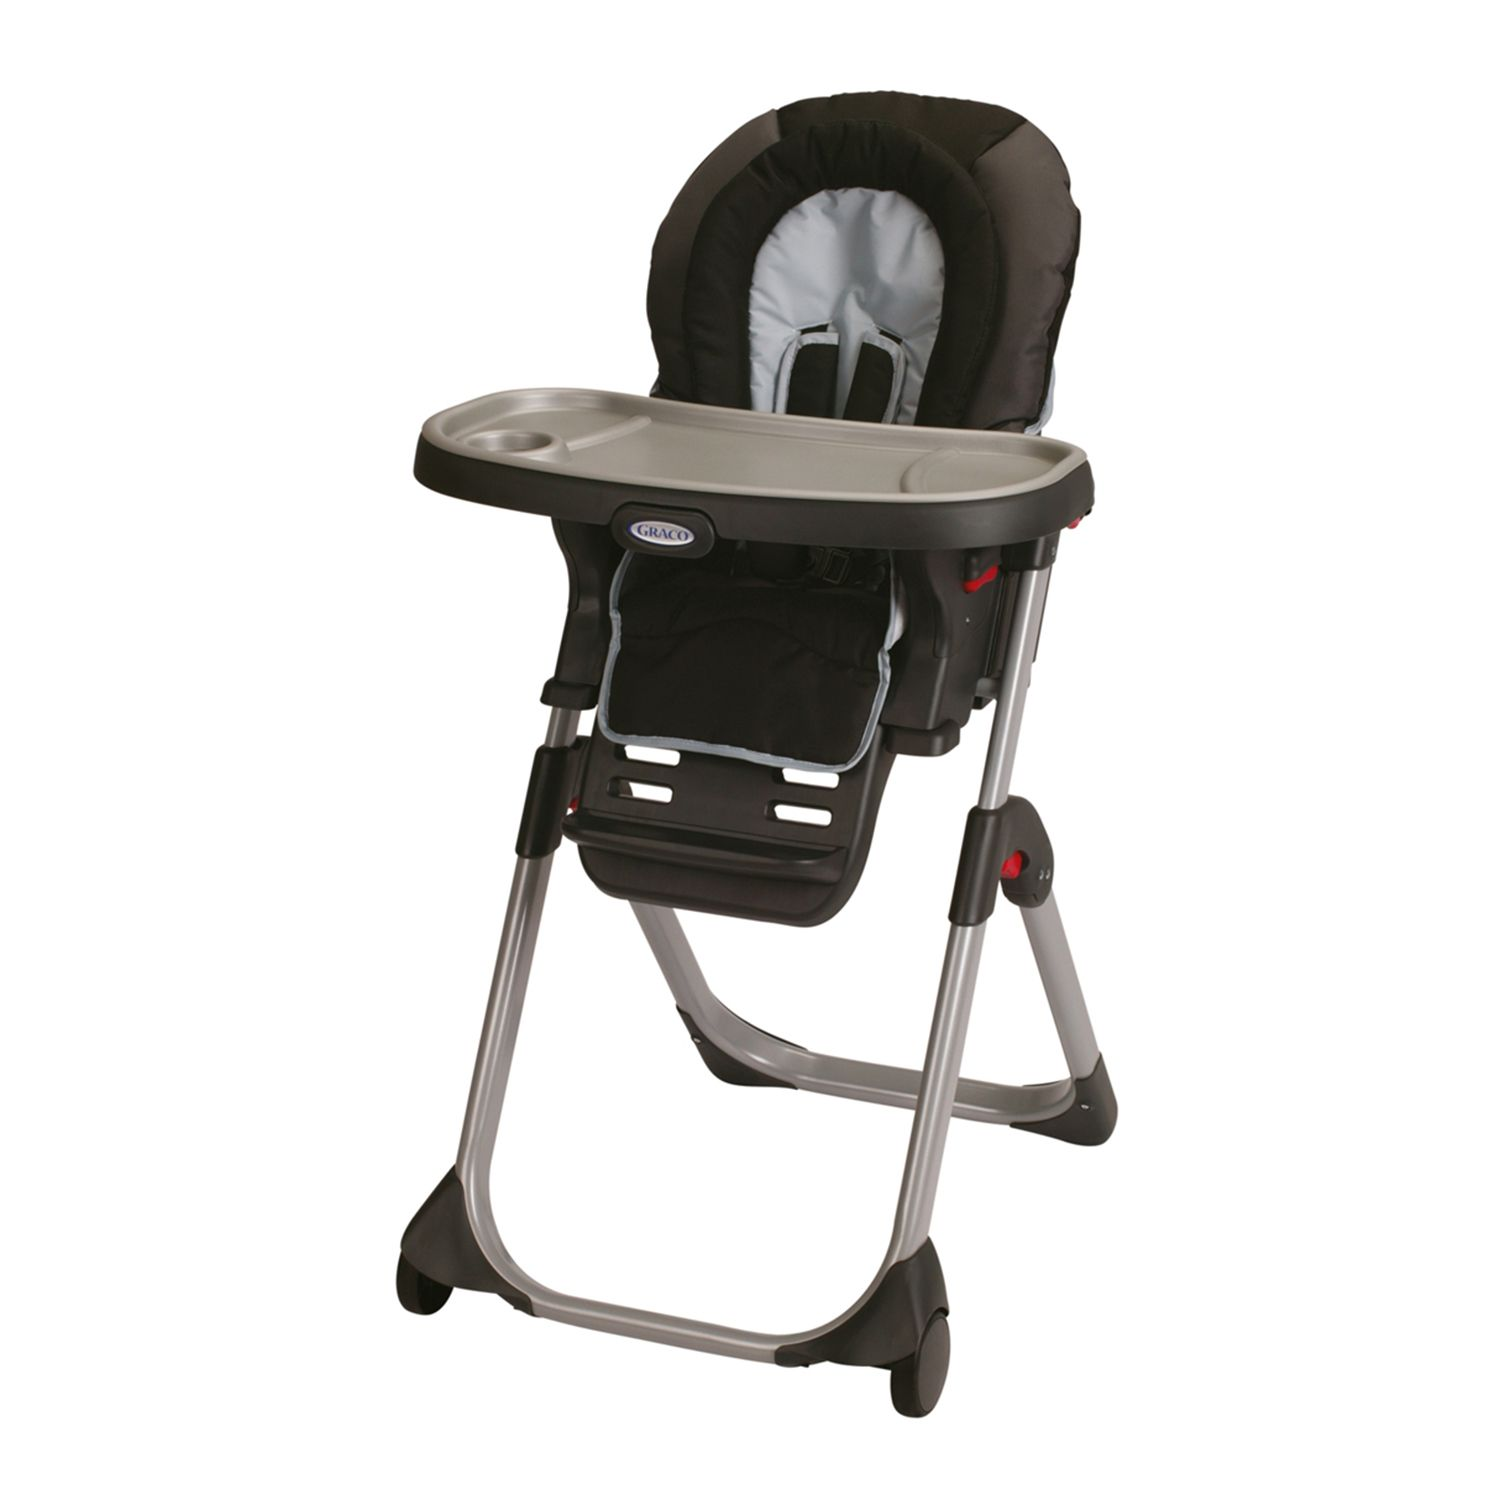 The First Years High Chair Booster Seat Free The First Years